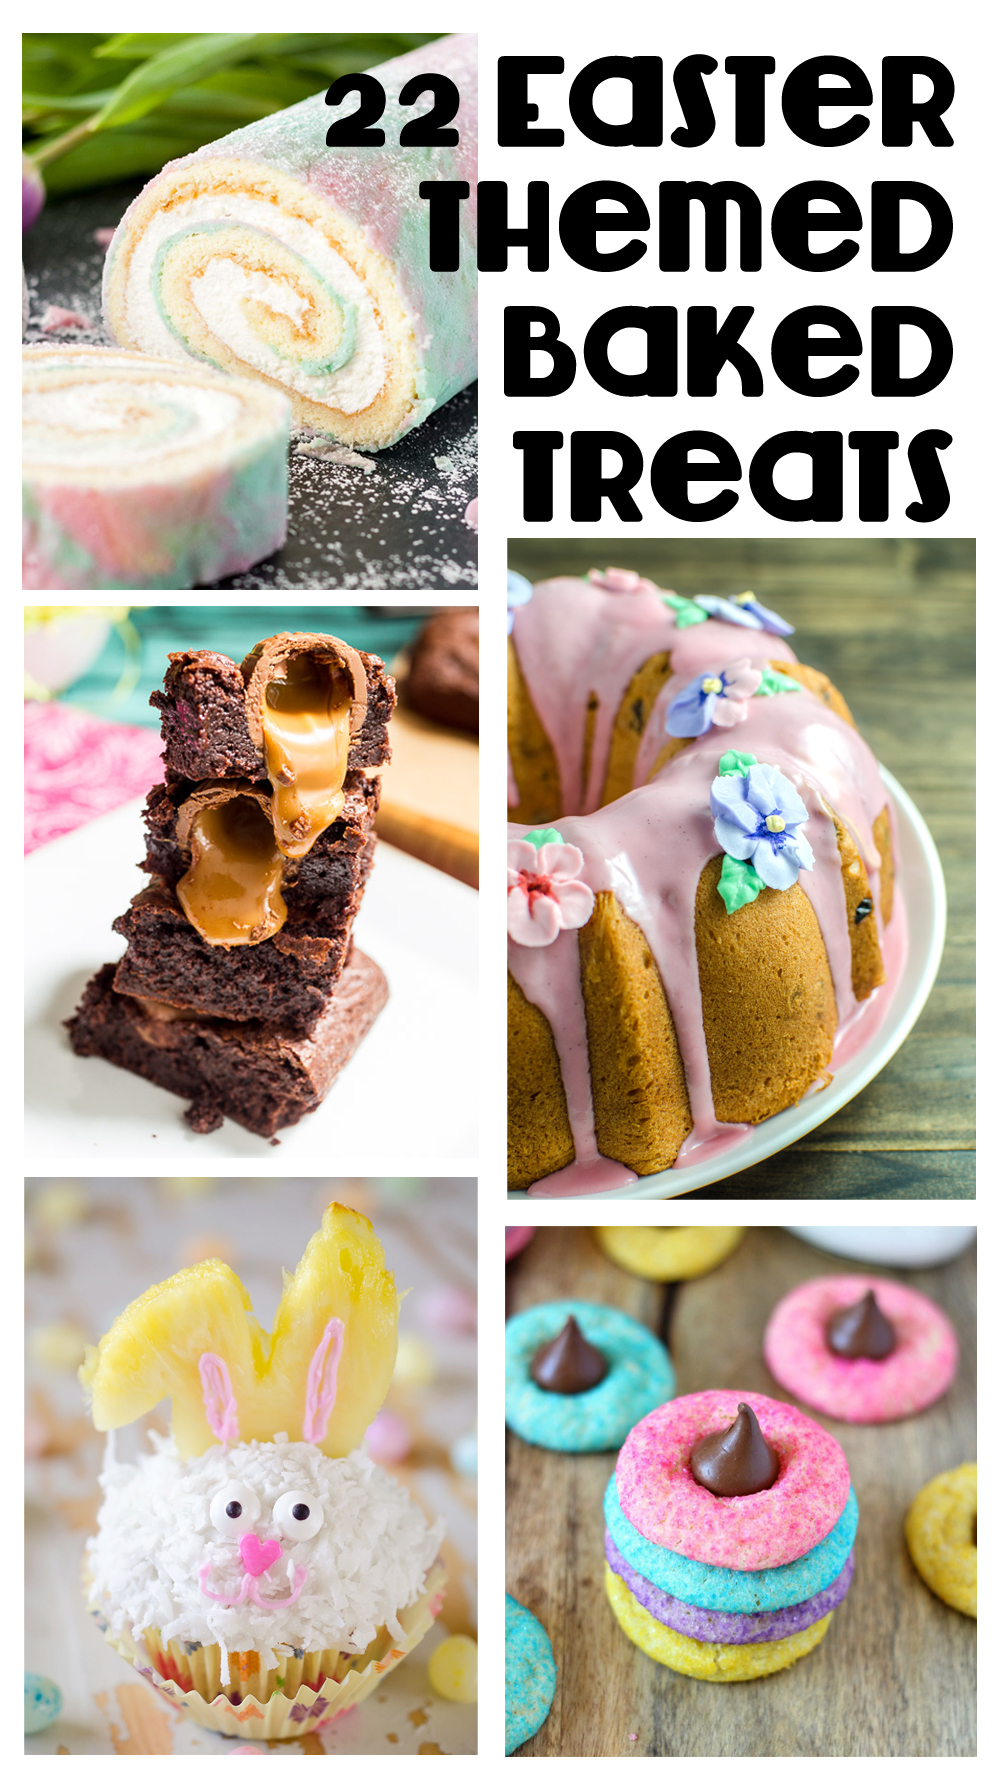 22 Delicious Easter Themed Baked Treats: Whether it's beautifully rich, decadent bread, cakes, cupcakes, or cookies - baked goods should be an essential part of your Easter brunch menu!